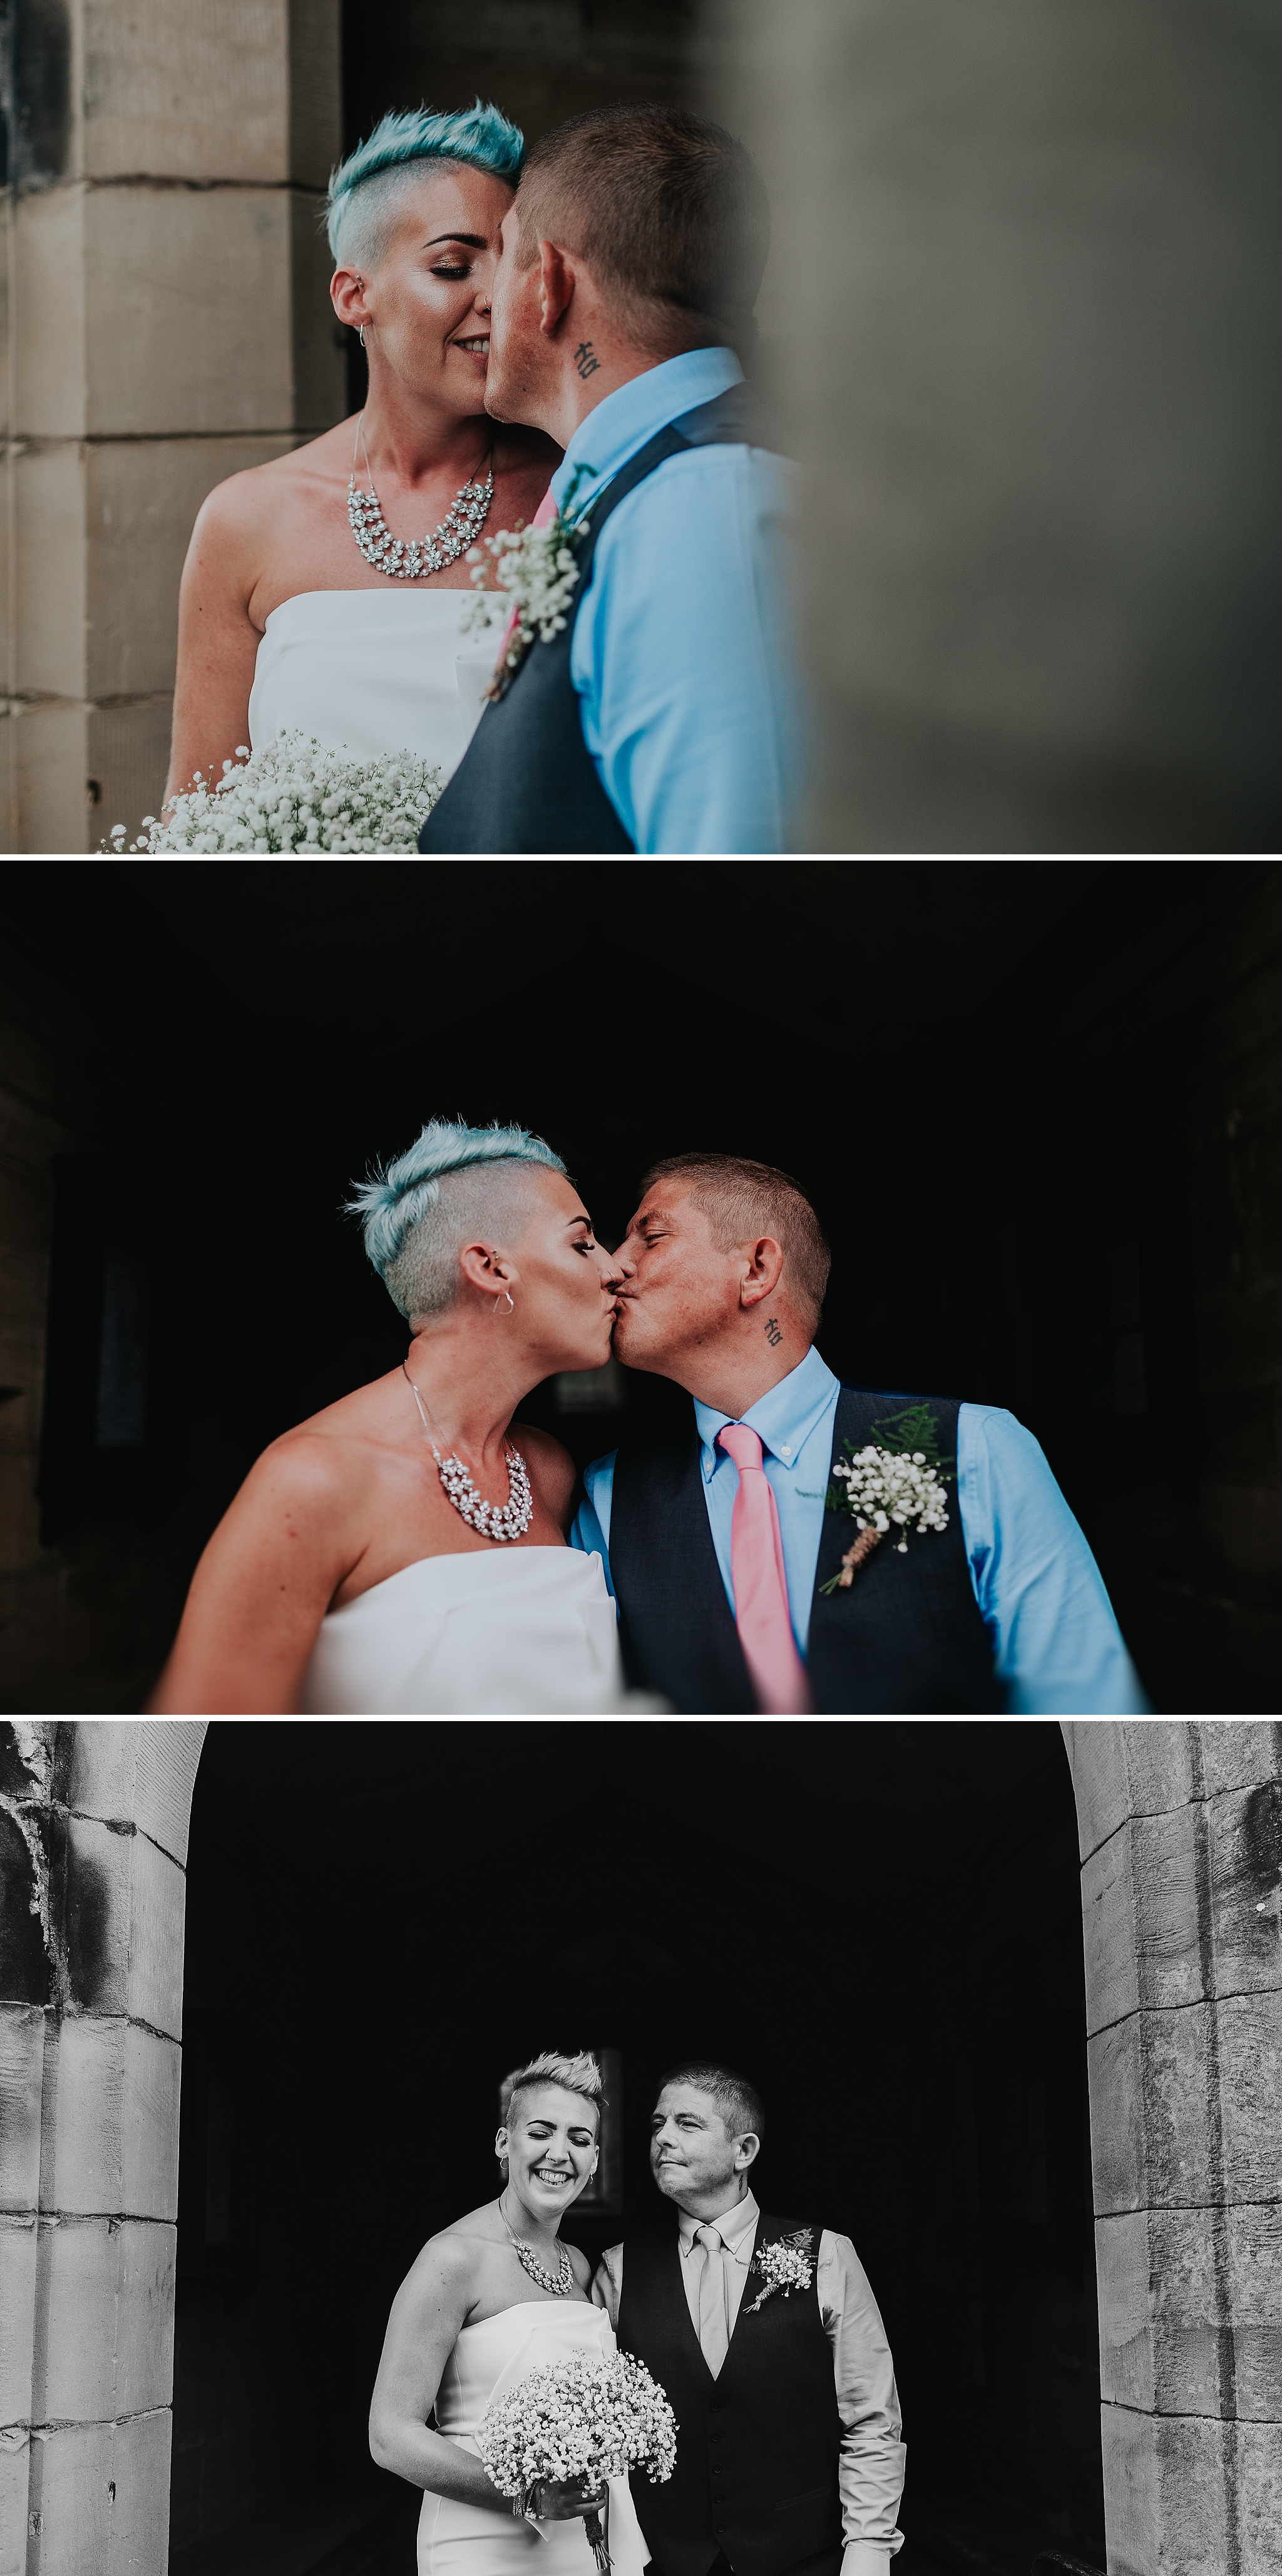 Weddings in Staffordshire, photography